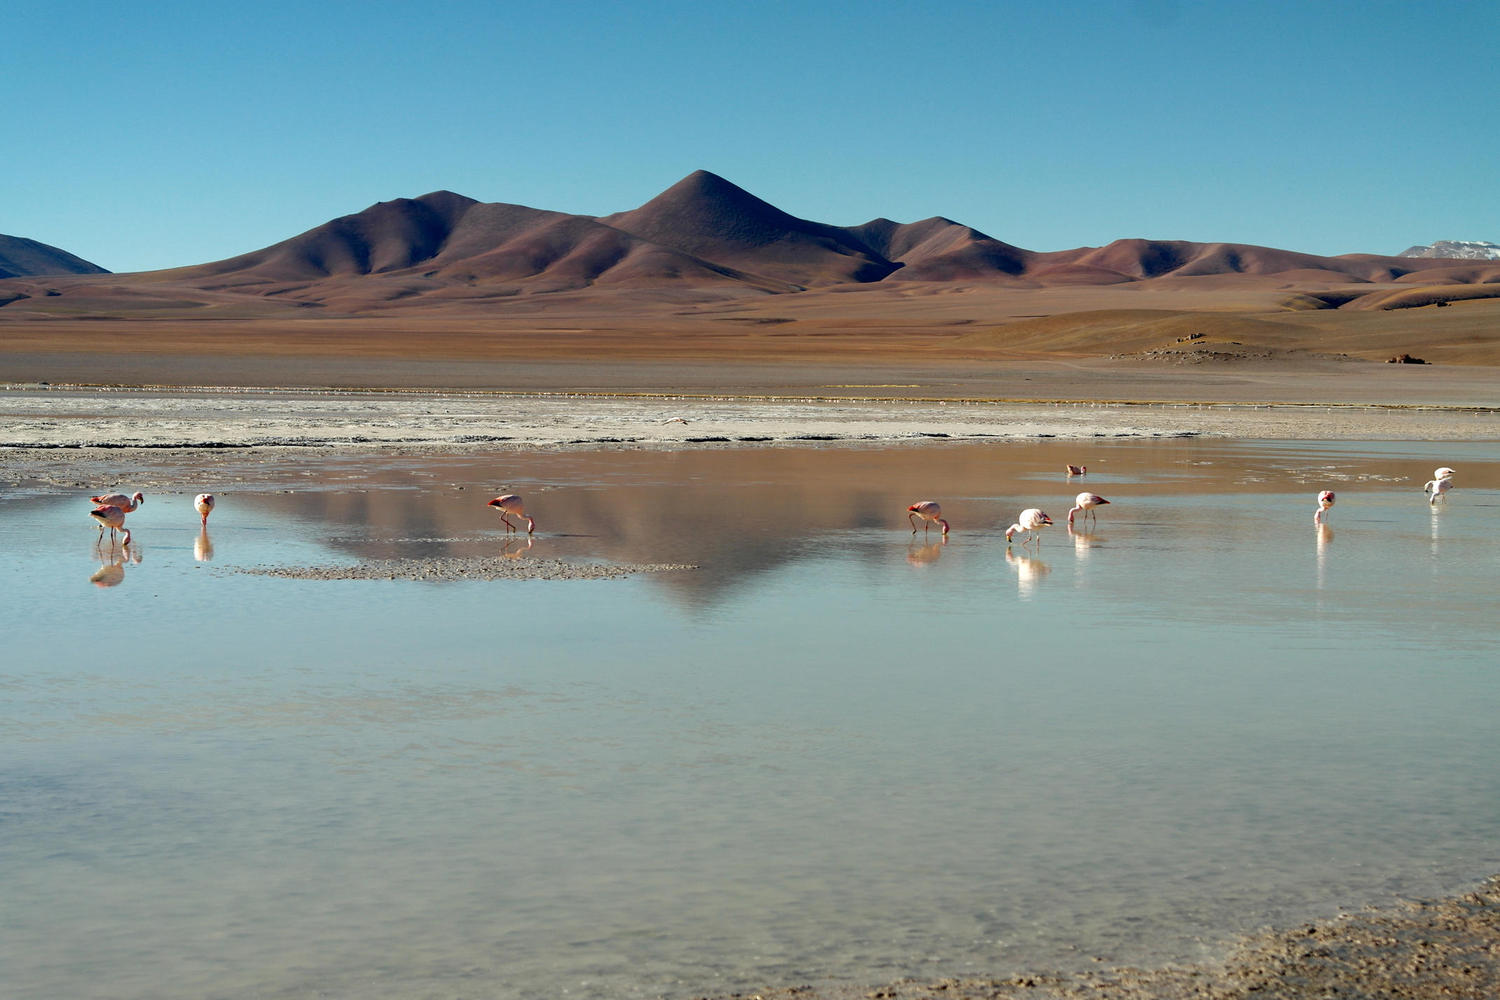 The flamingo filled lagoons of Argentina's puna